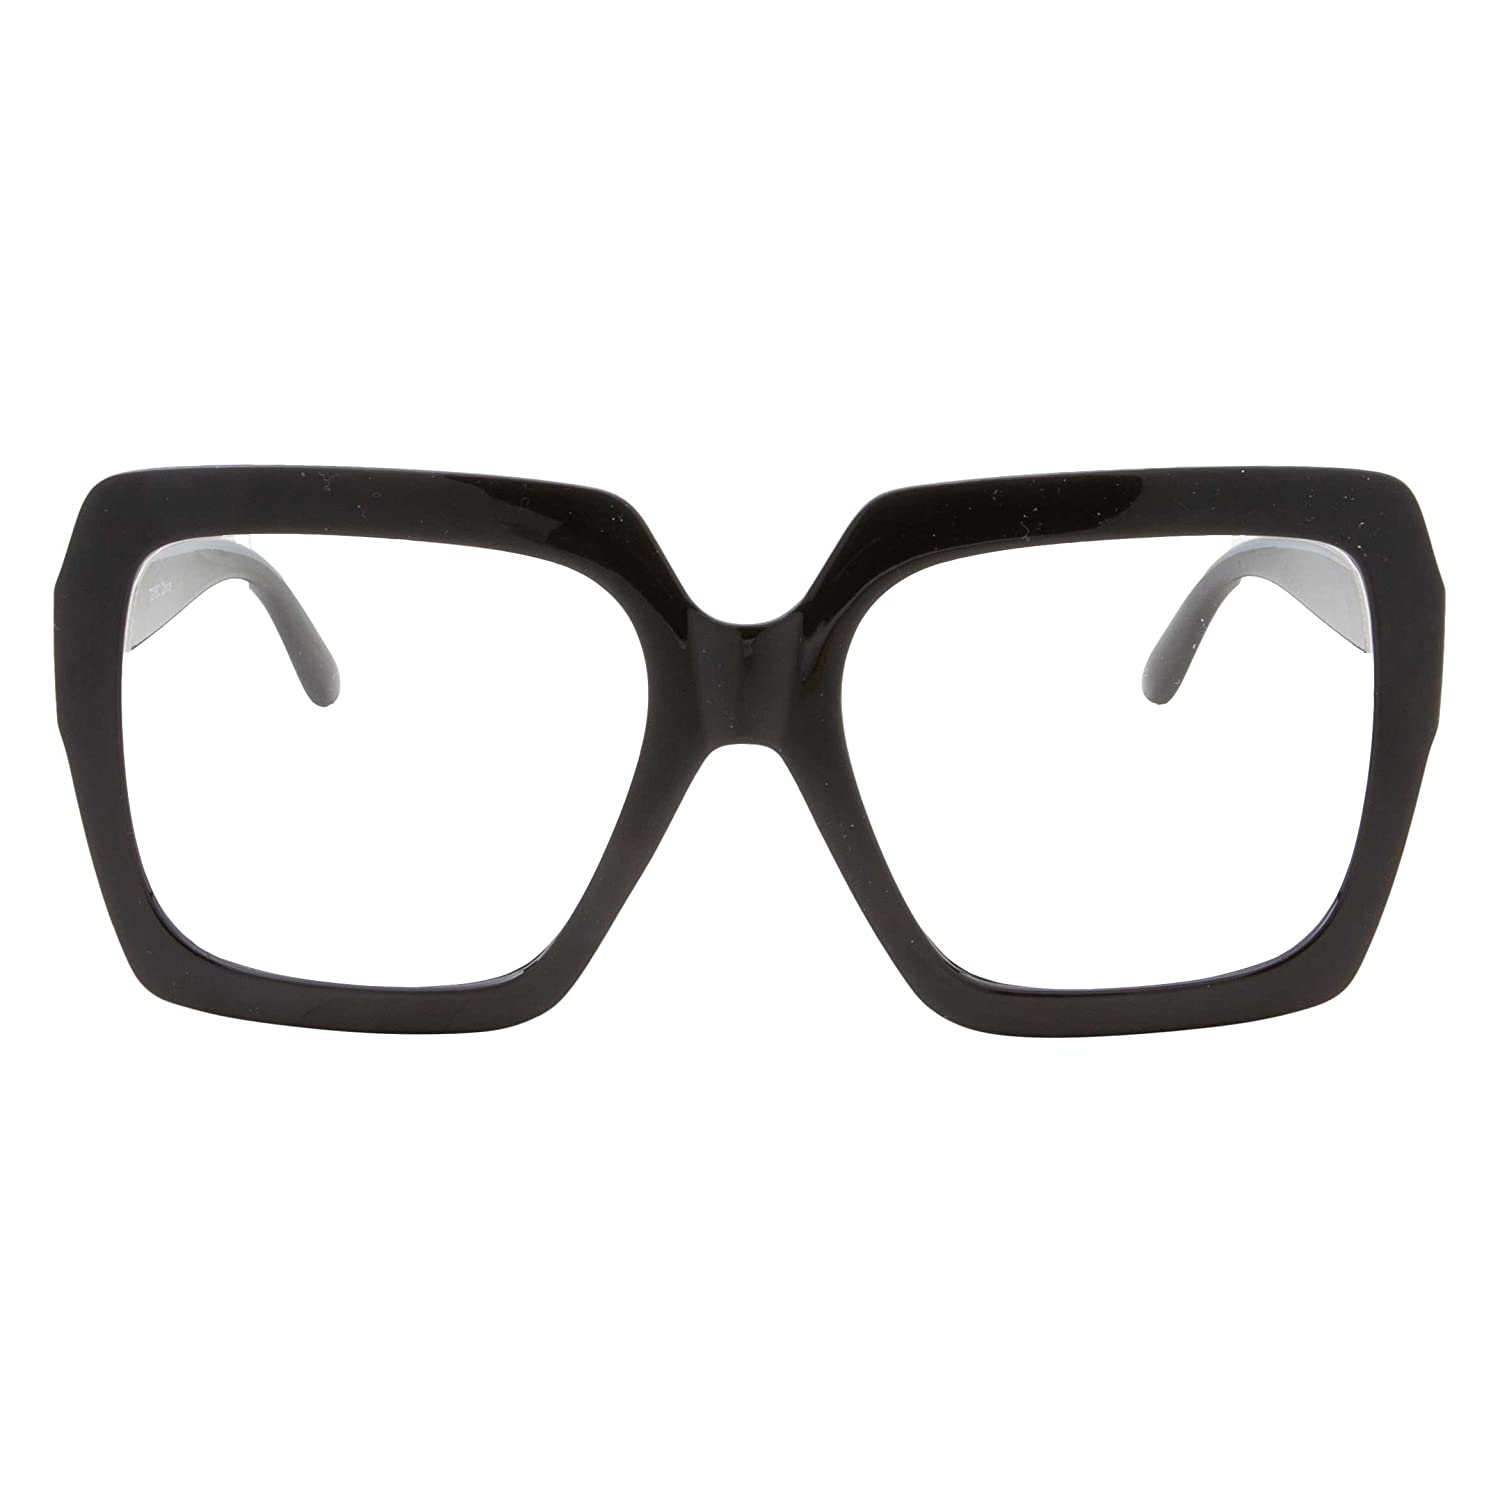 f0dcf2492b Amazon.com  XL Black Thick Square Oversized Clear Lens Glasses - Men and  Women Costume or Fashion (Black)  Clothing